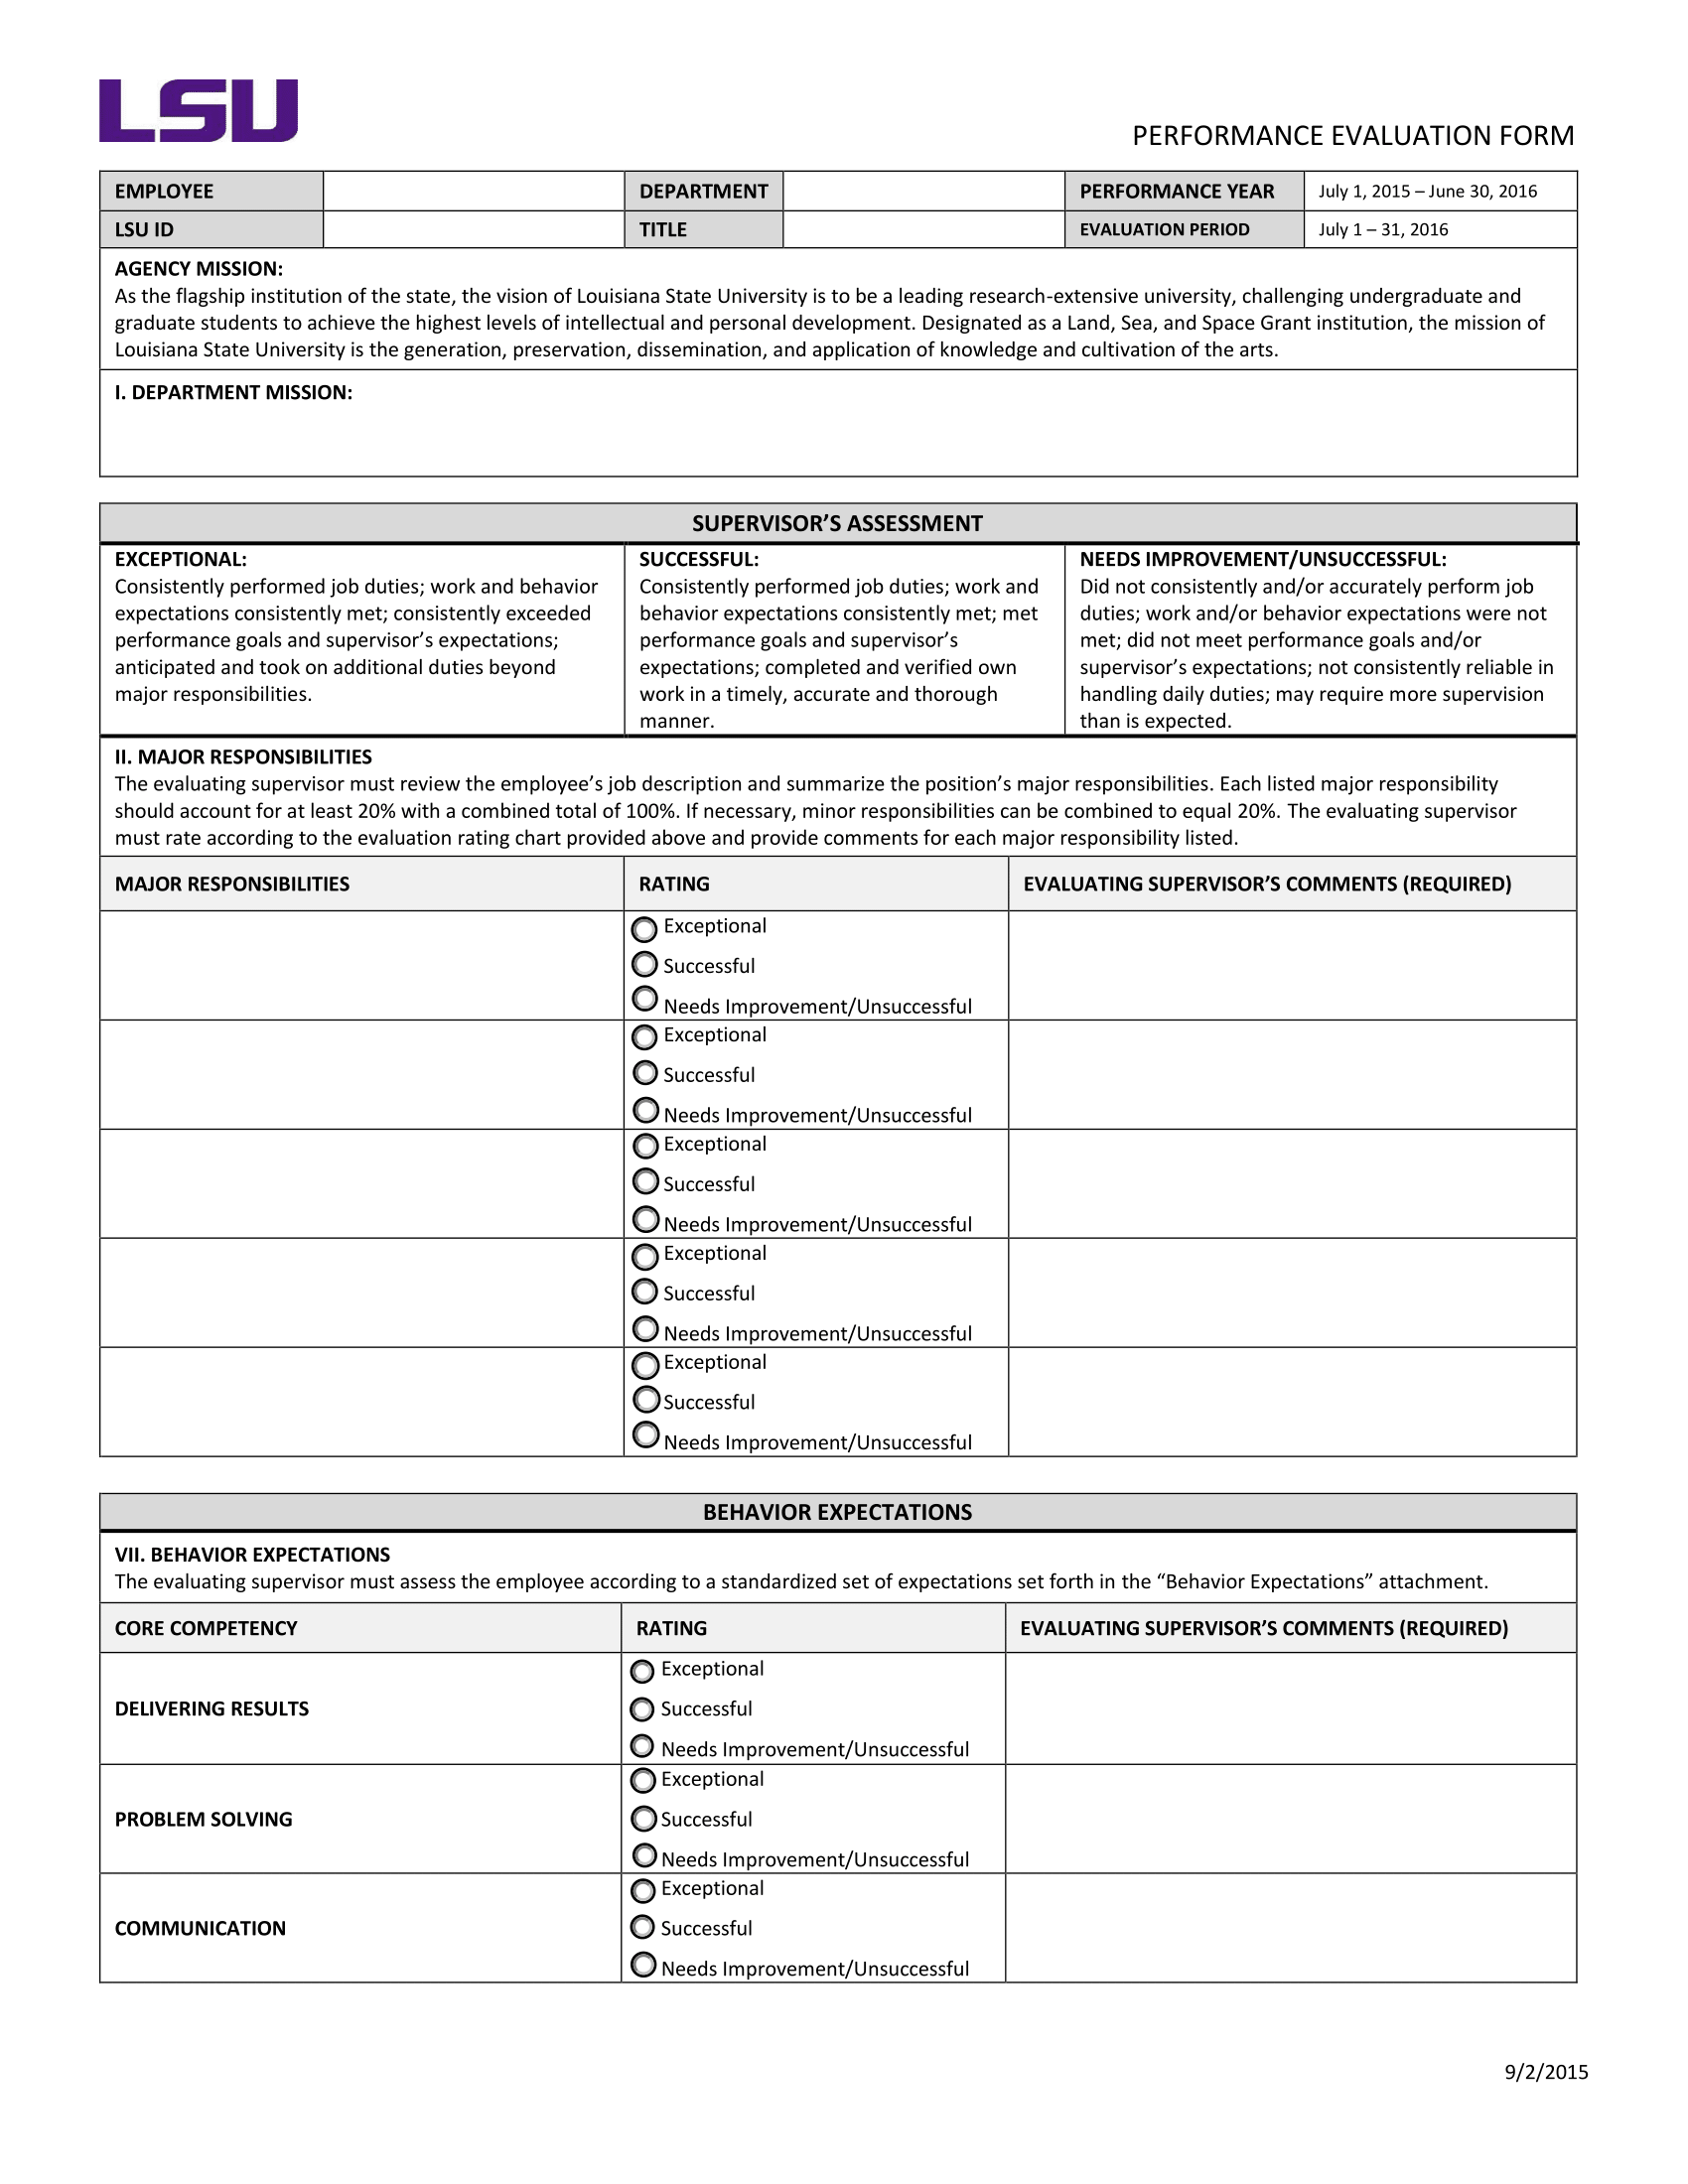 general performance evaluation form 1